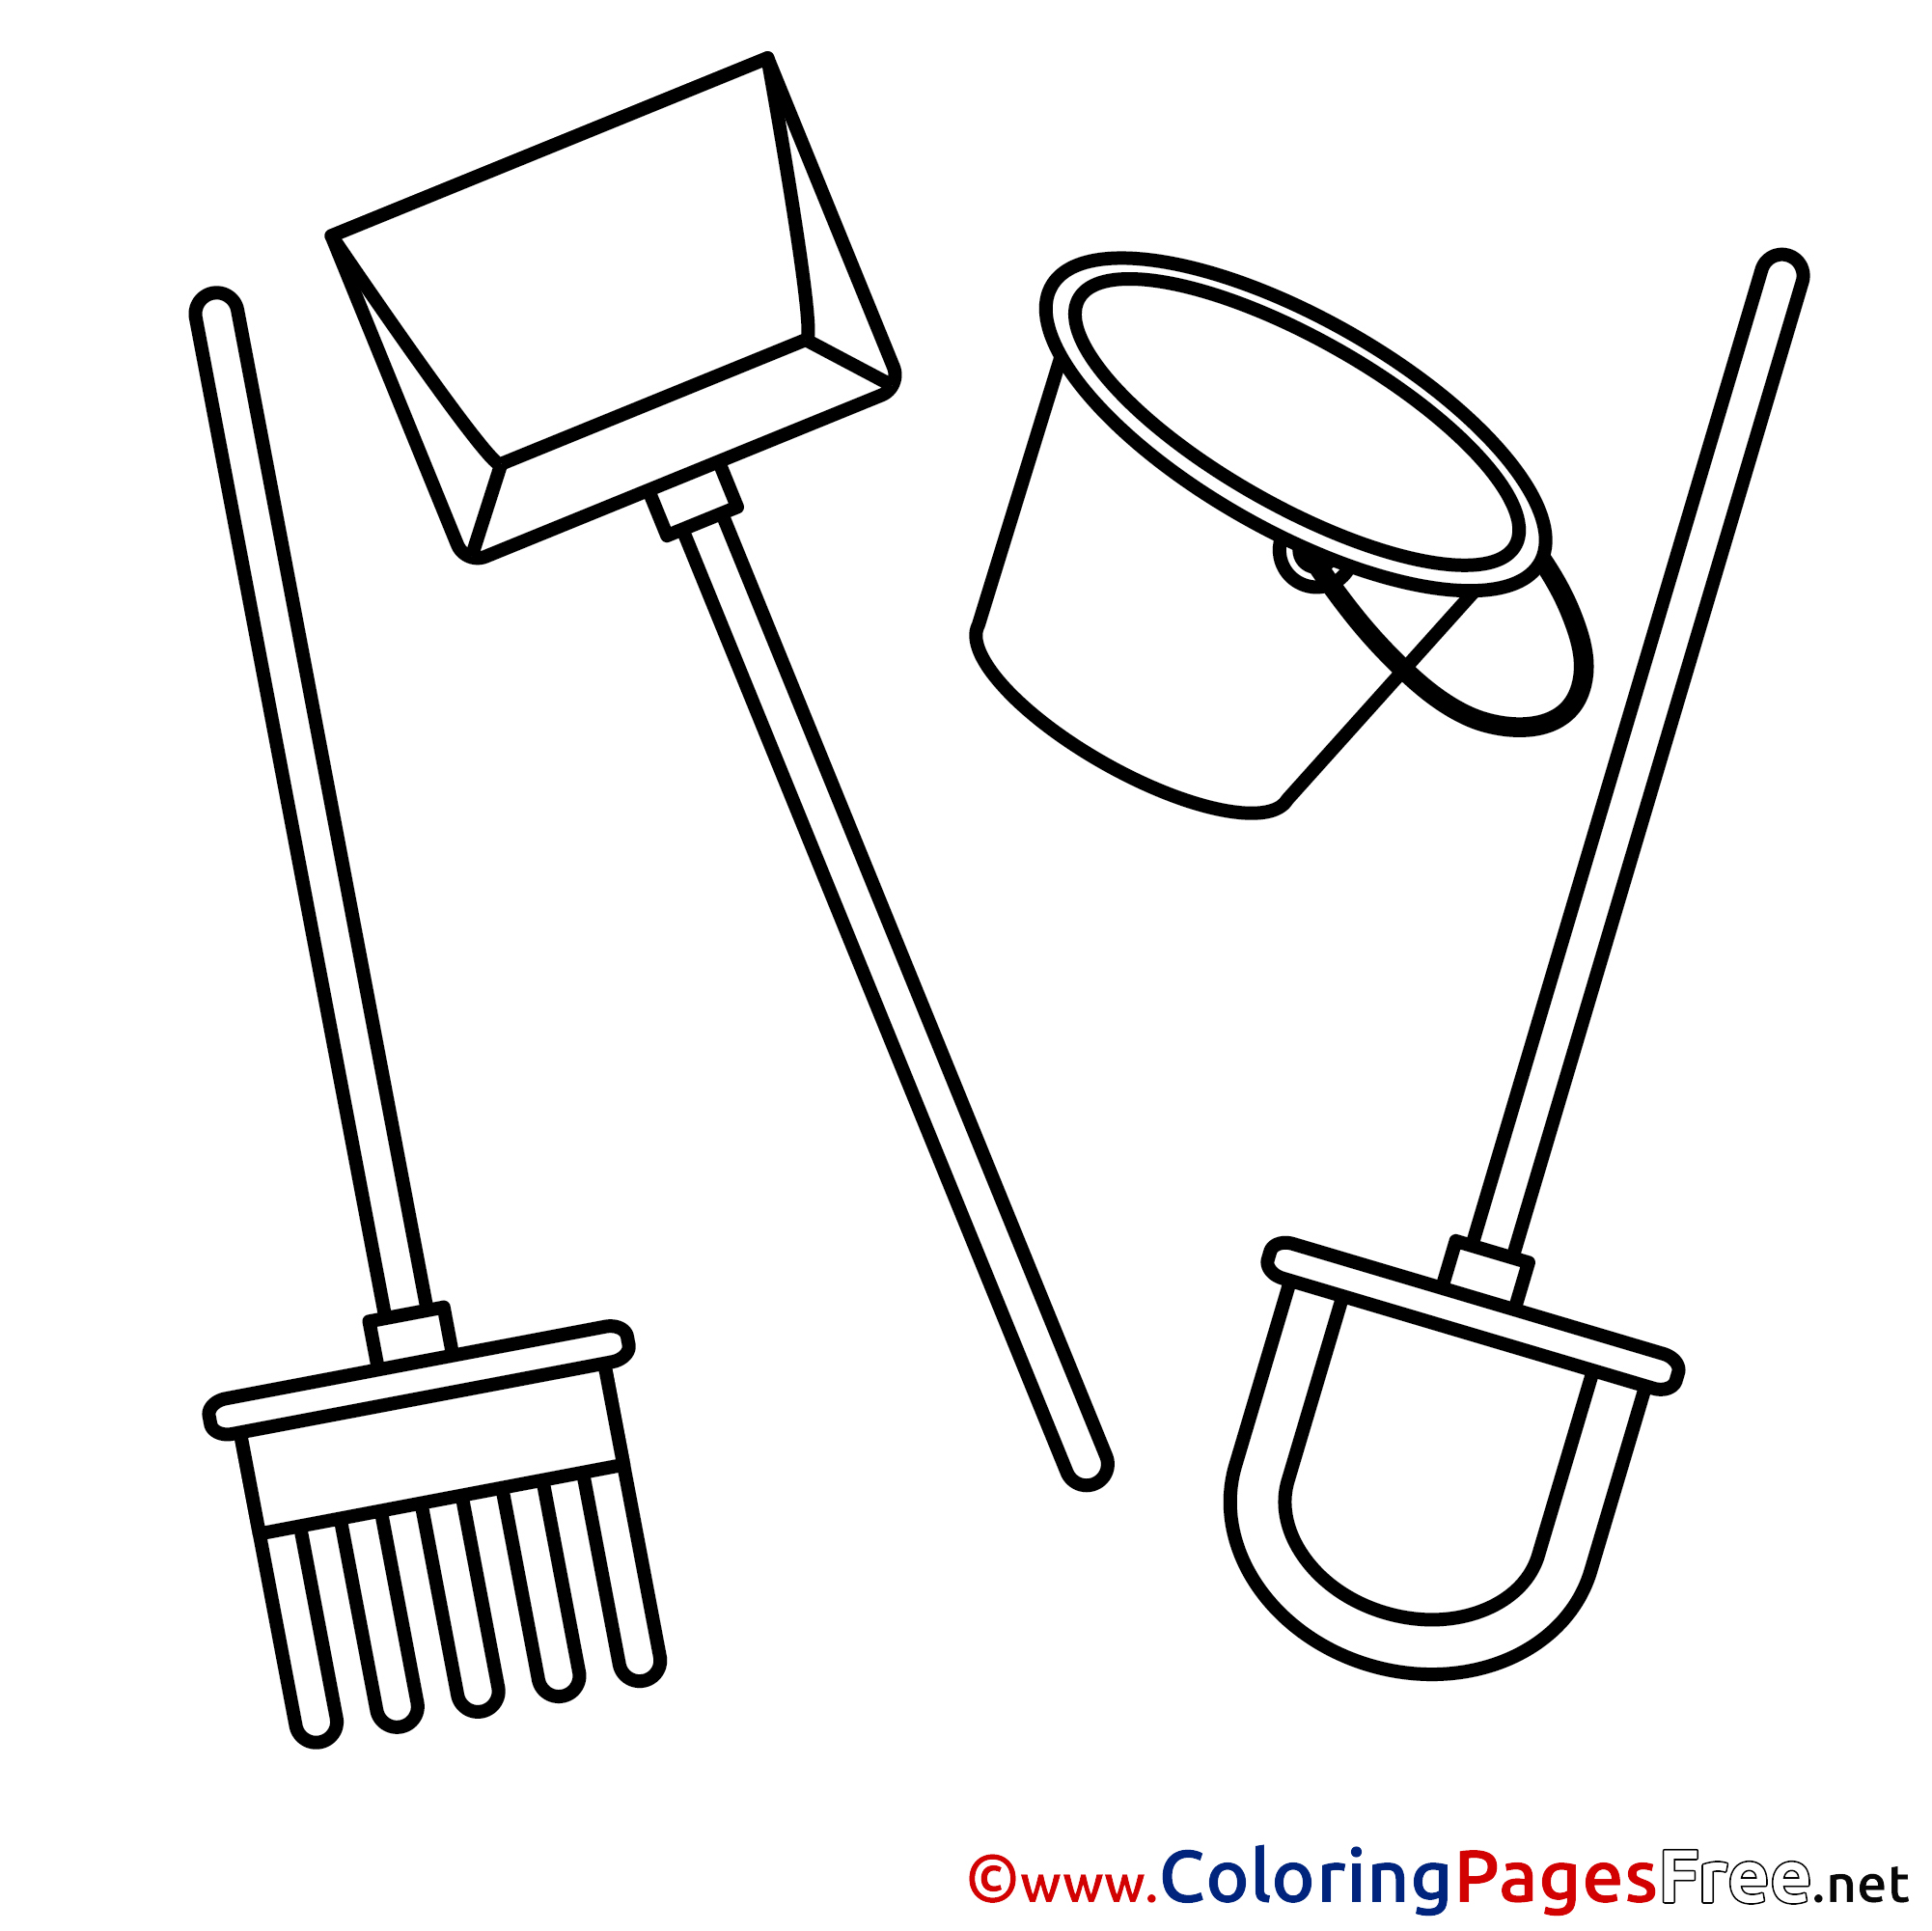 Free coloring pages instruments - Free Coloring Pages Instruments 42